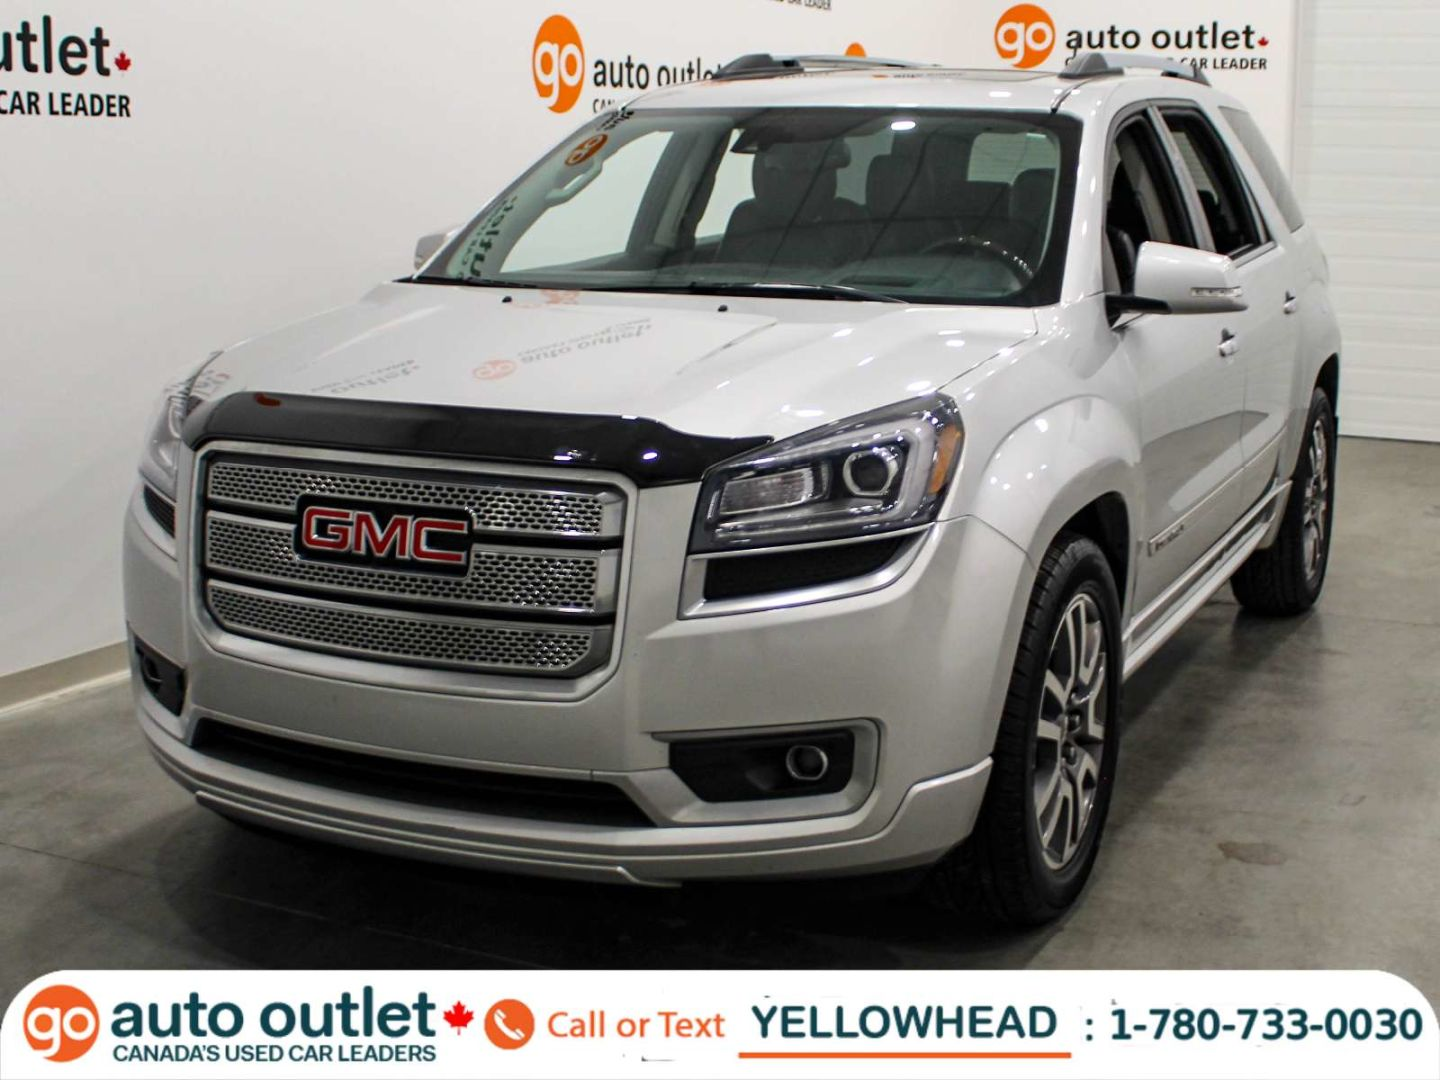 Gmc Acadia Denali For Sale >> 2014 Gmc Acadia Denali